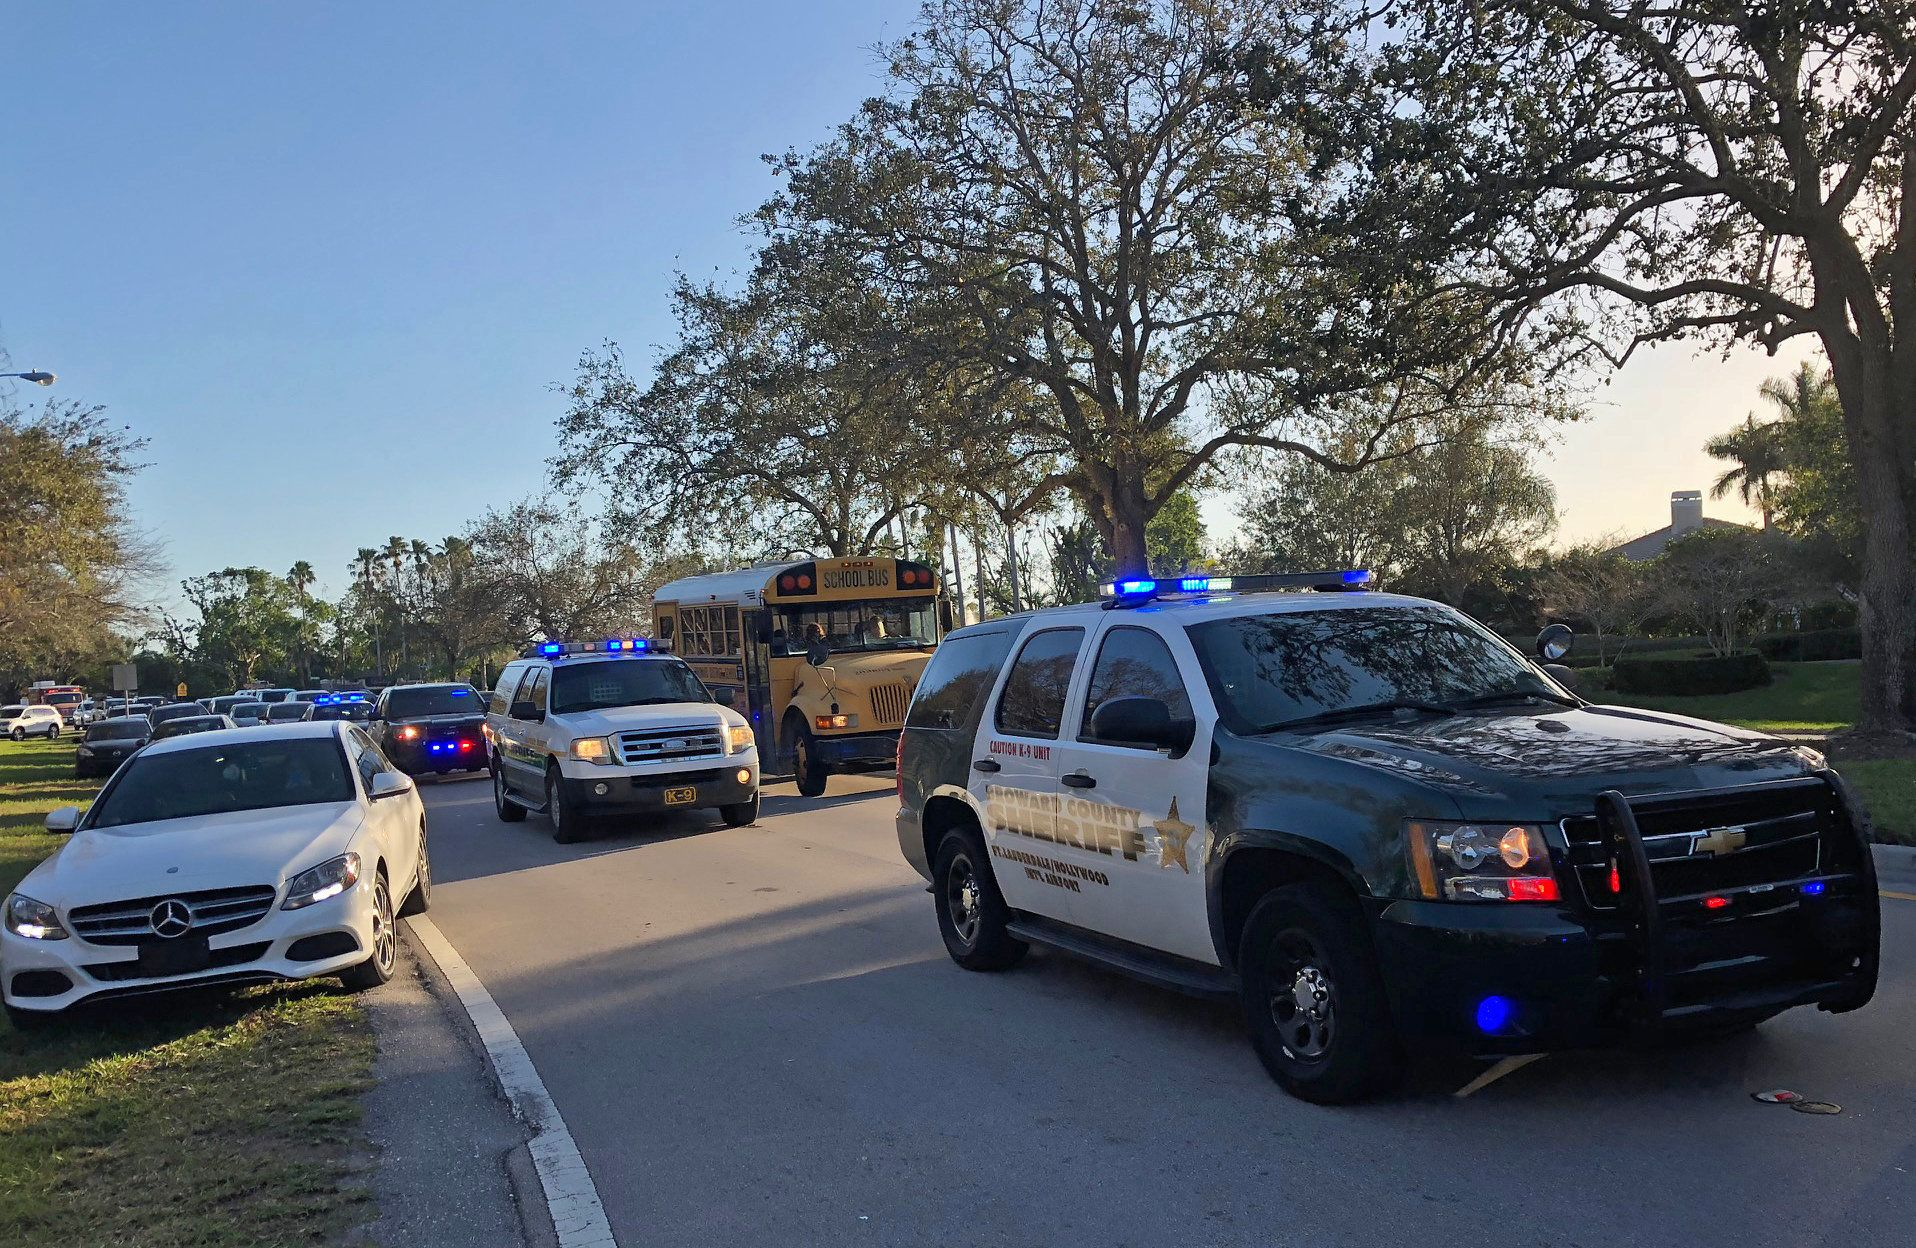 Sheriff vehicles are seen at Marjory Stoneman Douglas High School in Parkland, Florida, a city about 50 miles (80 kilometers) north of Miami on February 14, 2018 following a school shooting. A gunman opened fire at the Florida high school, an incident that officials said caused 'numerous fatalities' and left terrified students huddled in their classrooms, texting friends and family for help. The Broward County Sheriff's Office said a suspect was in custody. / AFP PHOTO / Michele Eve SANDBERG        (Photo credit should read MICHELE EVE SANDBERG/AFP/Getty Images)